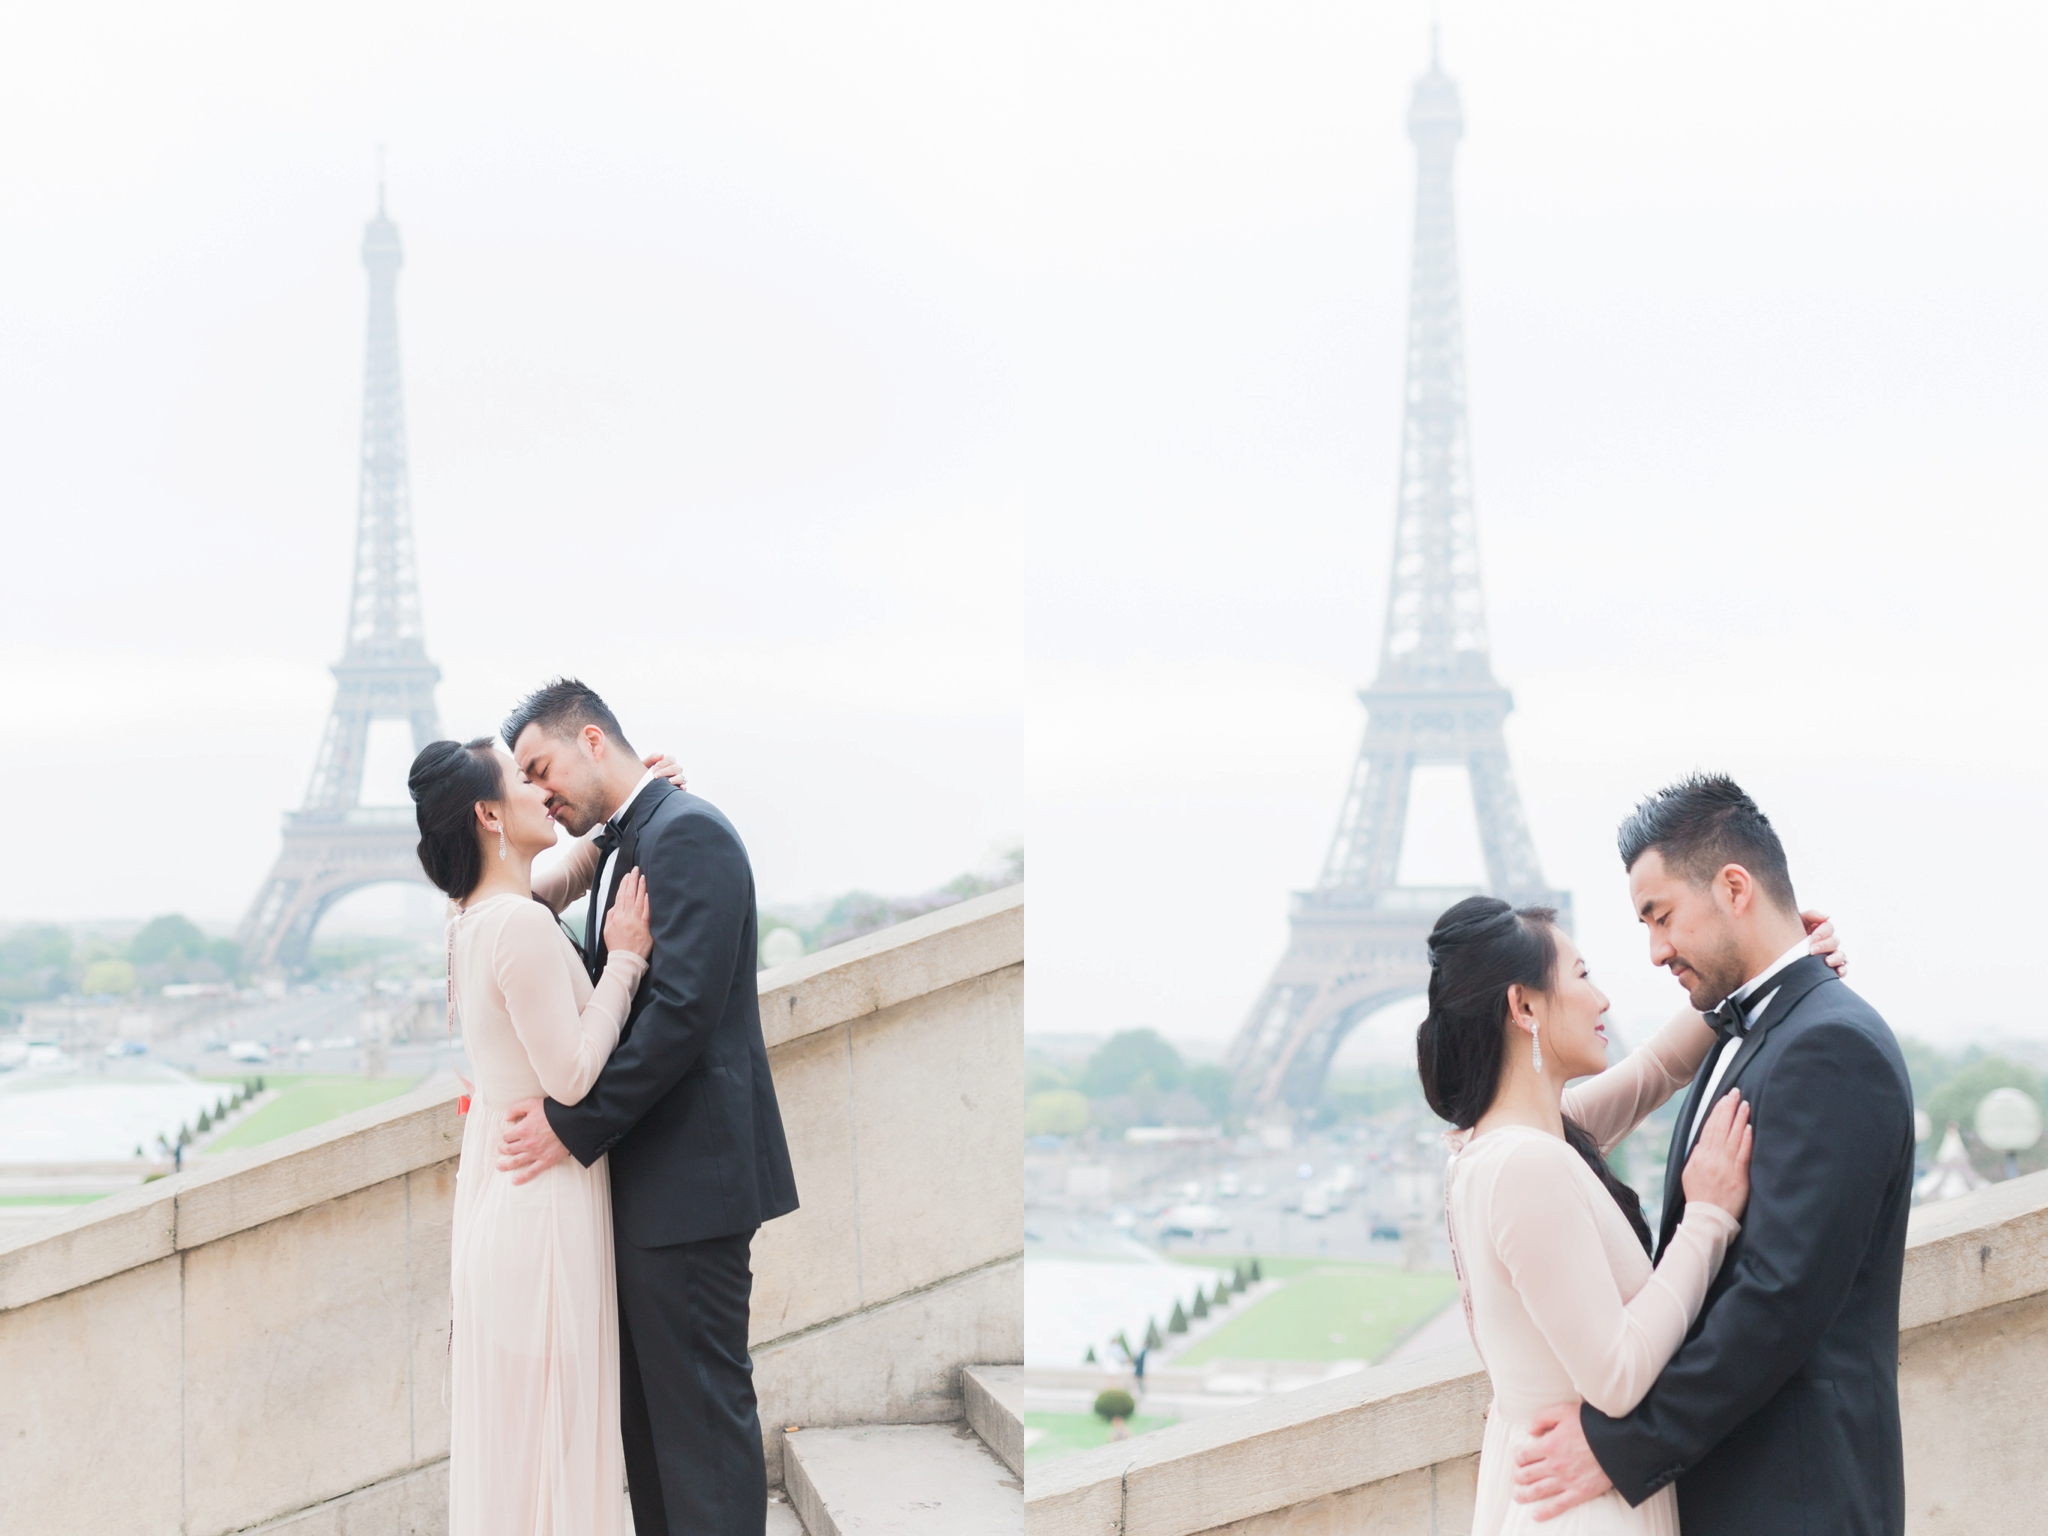 Suzanne_li_photography_paris_engagement_shoot_0028.jpg